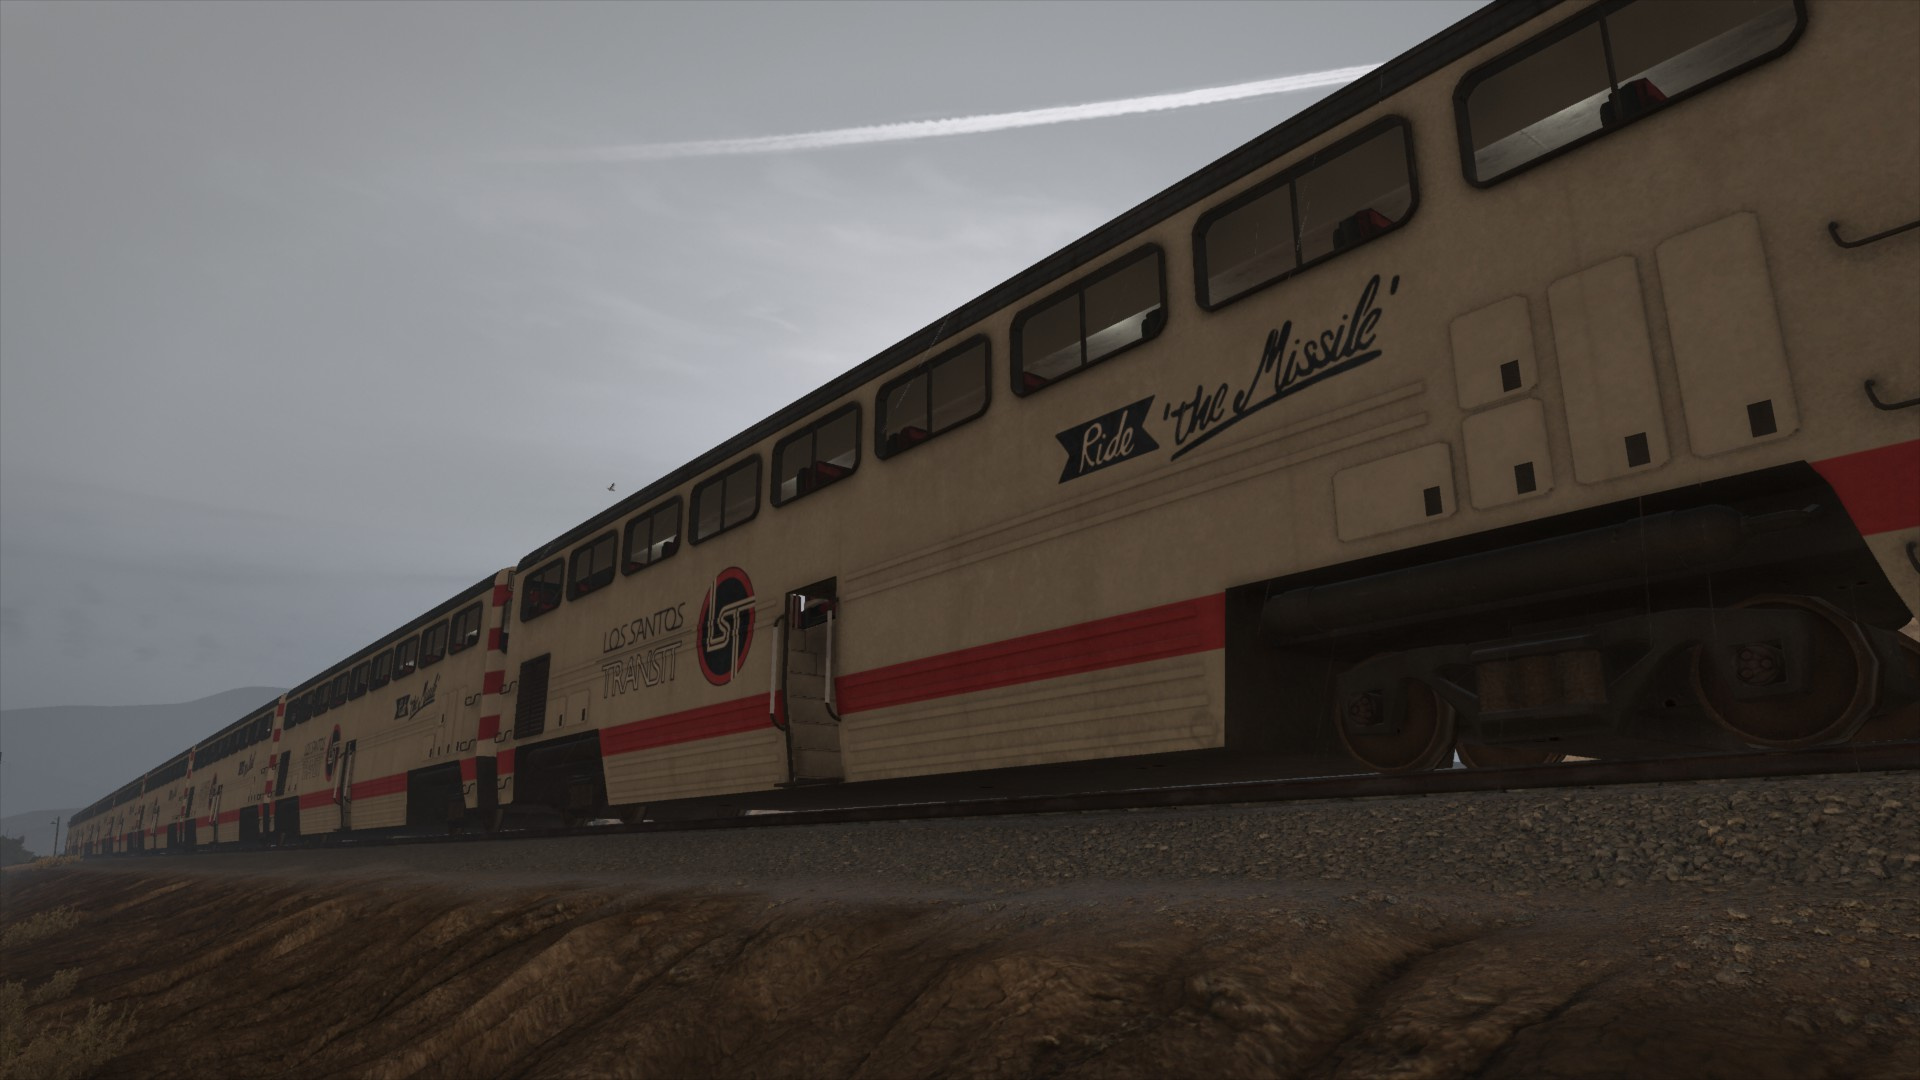 Extra Lore-Friendly Liveries for Walter's Overhauled Trains - GTA5